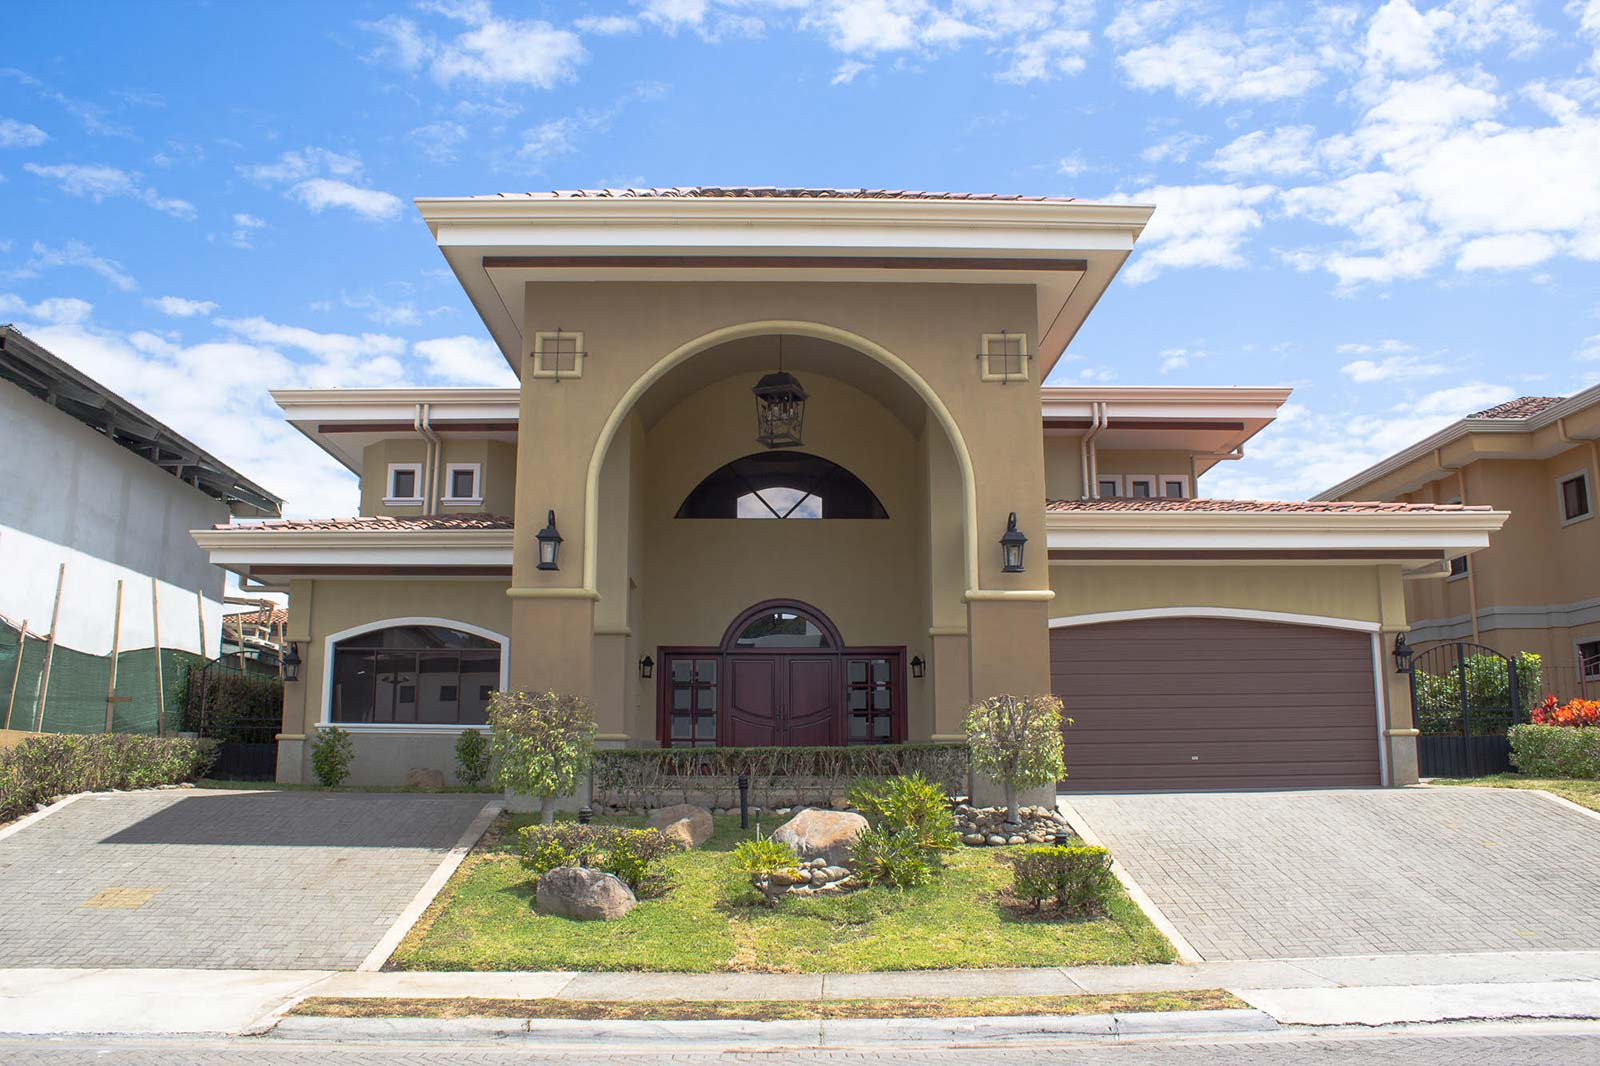 Single Family Home in Hacienda del Sol Premier Gated Community of Santa Ana with swimming pool and tennis